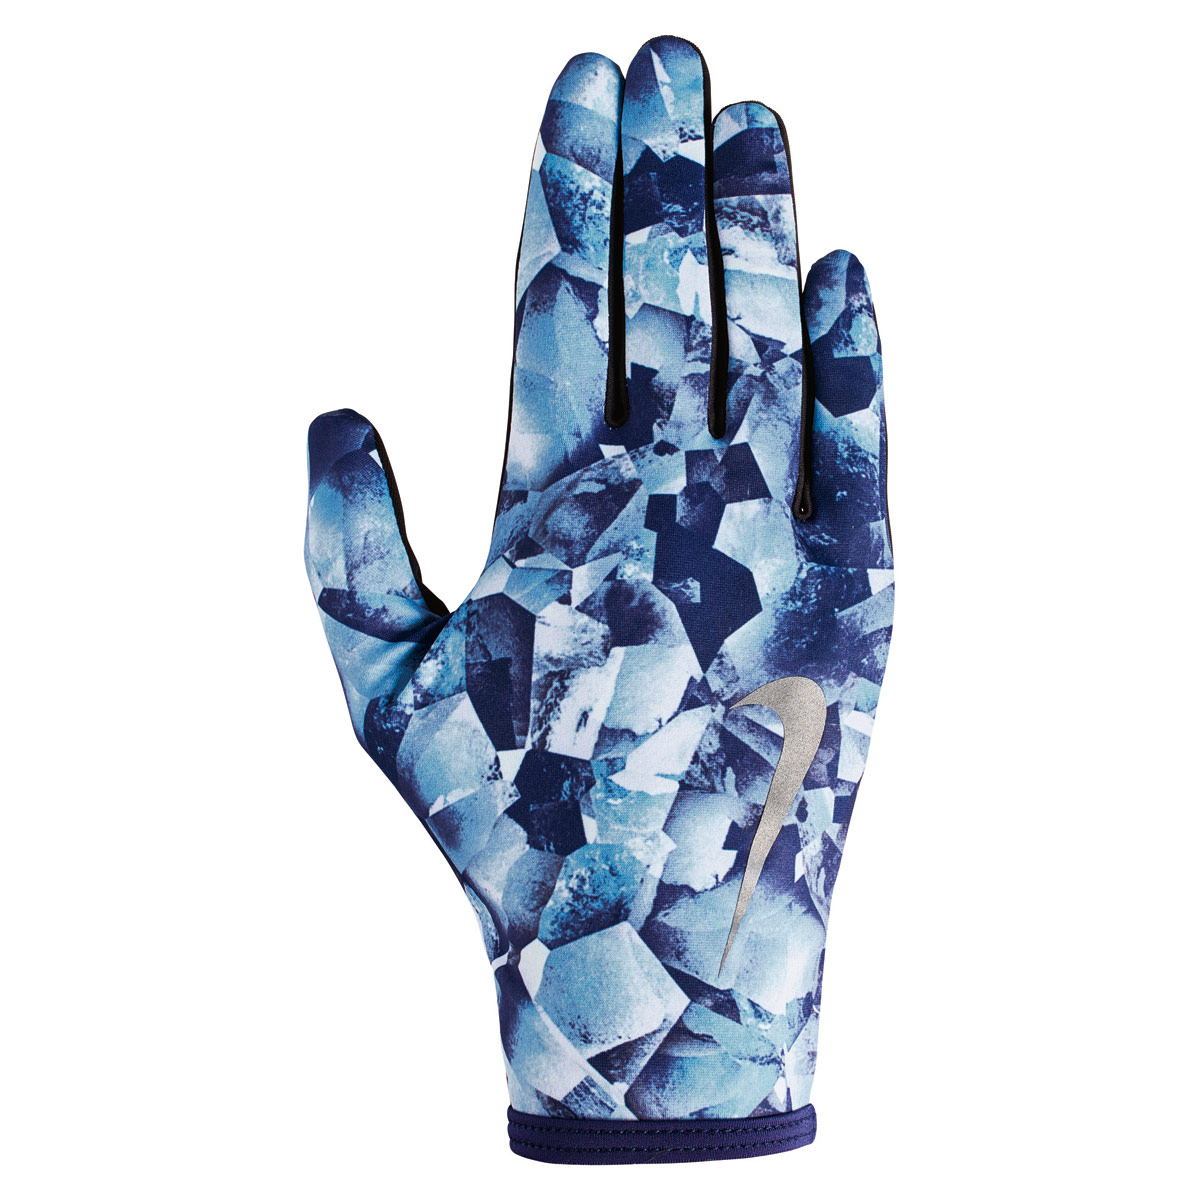 new arrival 2a5e6 971cc Nike Printed Lightweight Rival Run Gloves 2.0 - Running gloves for Women -  Blue   21RUN